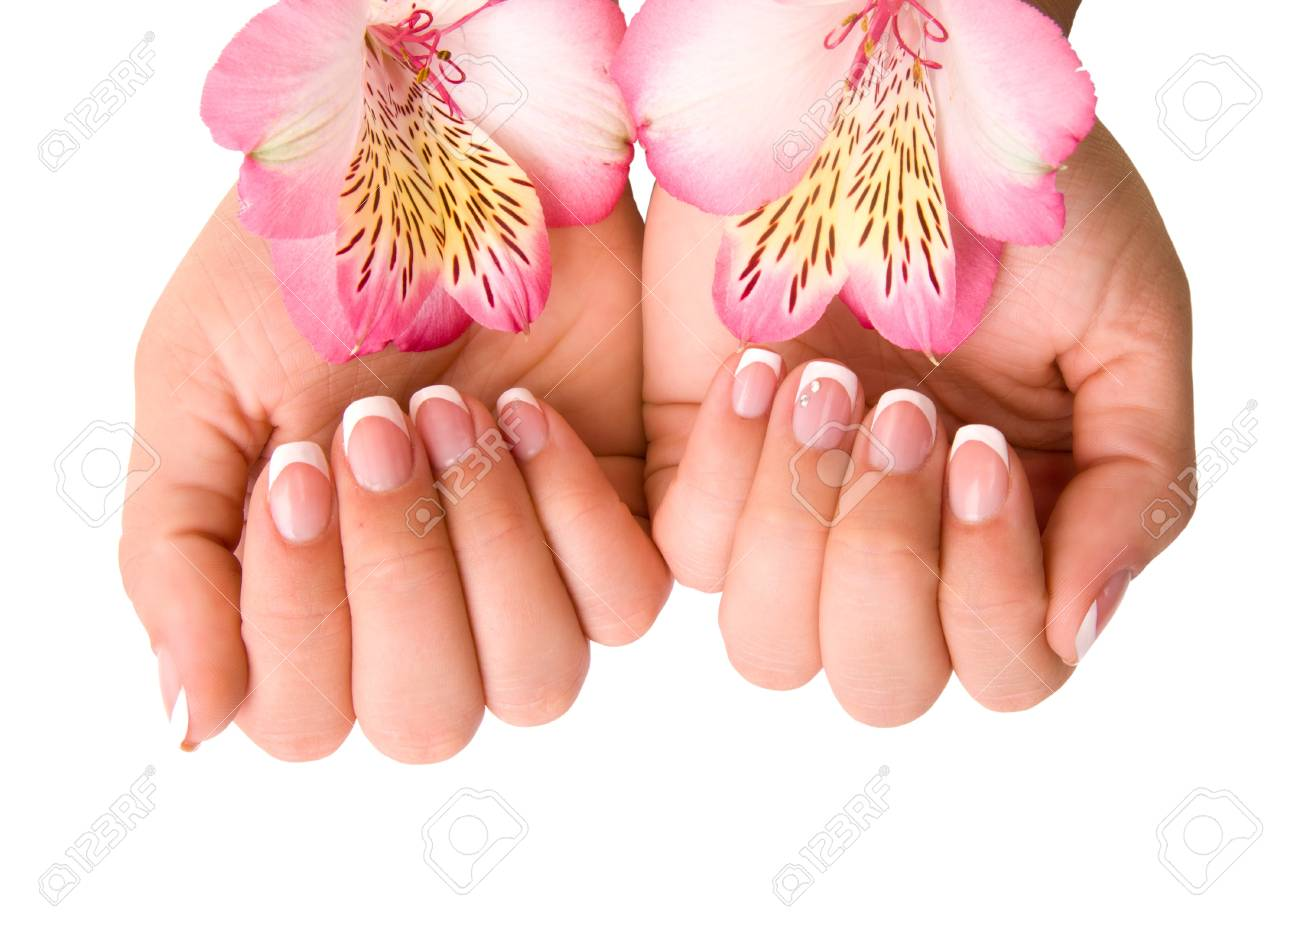 nail care for women's hands, isolated on white background Stock Photo - 17784661